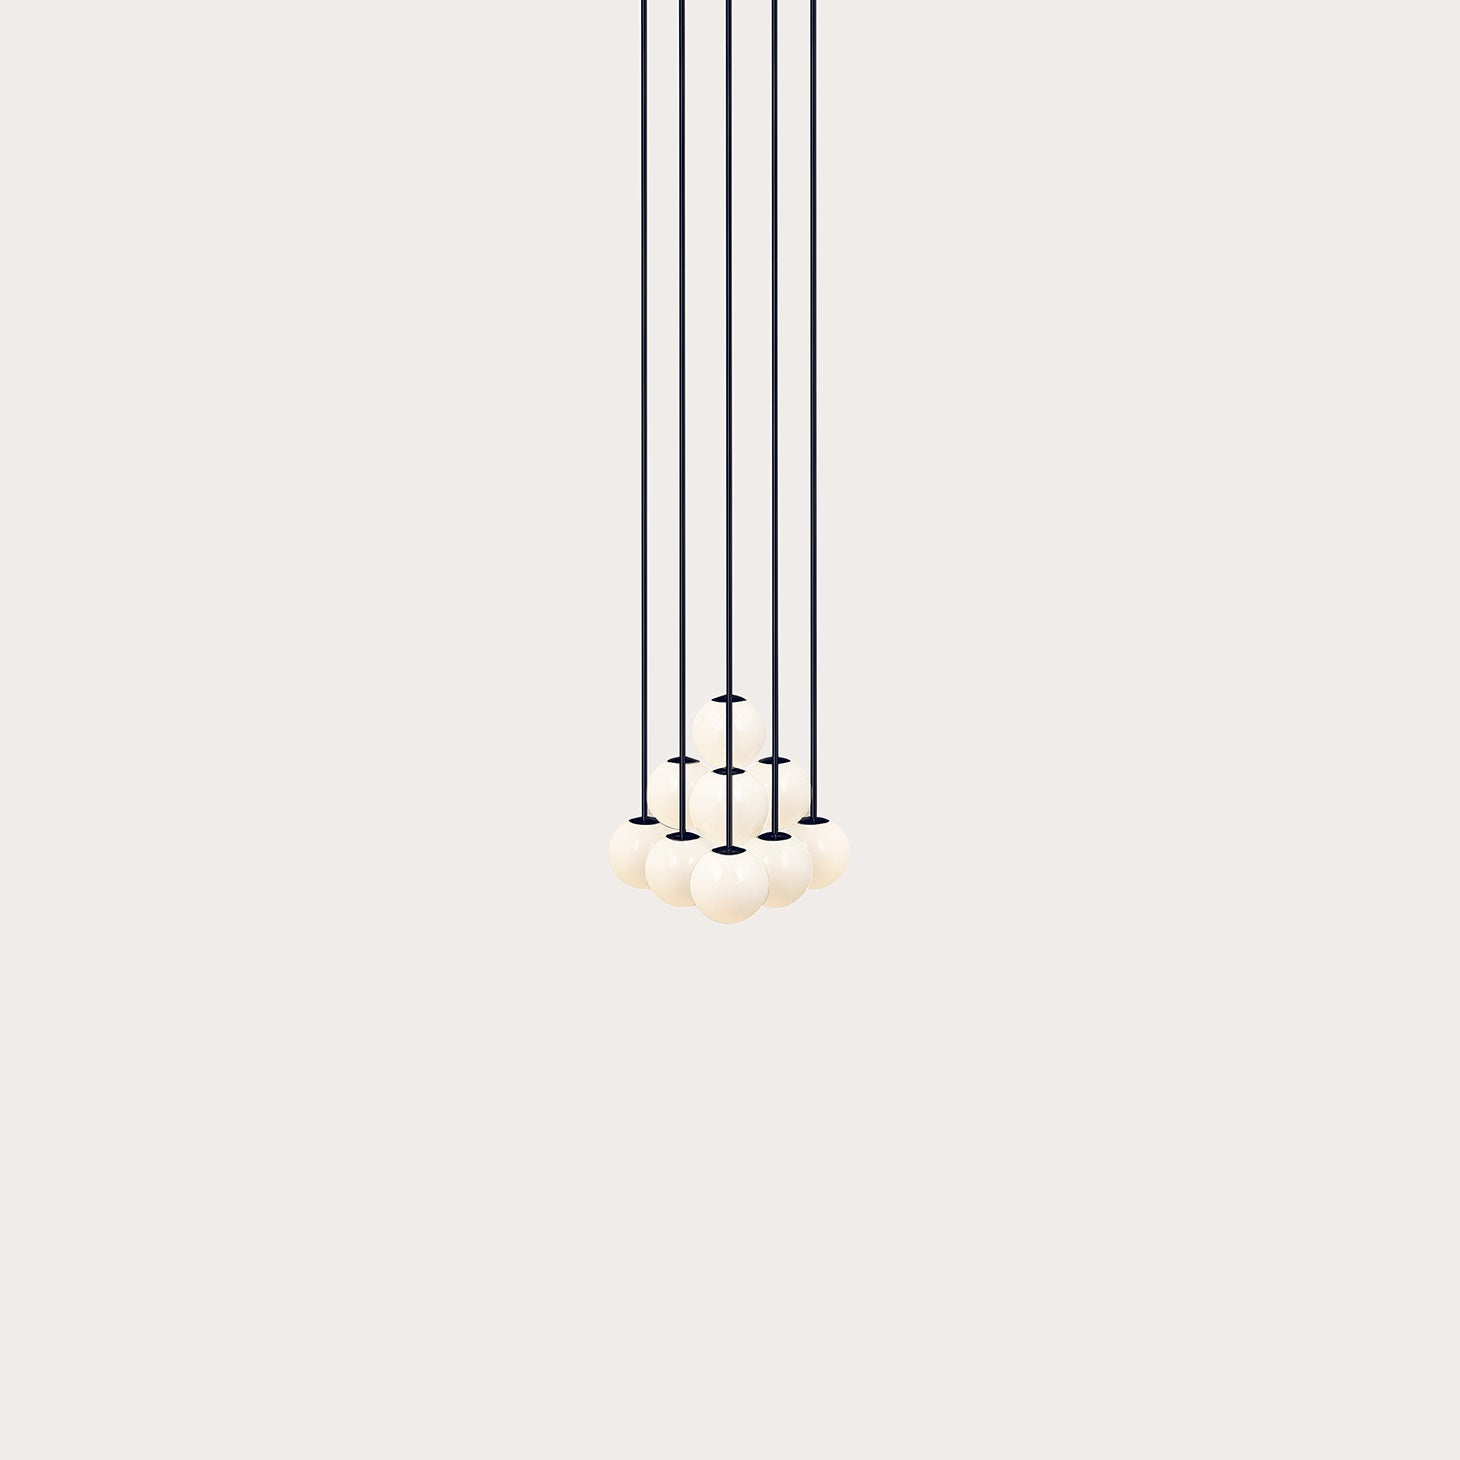 Happy Together 10 Lighting Michael Anastassiades Designer Furniture Sku: 717-160-10028